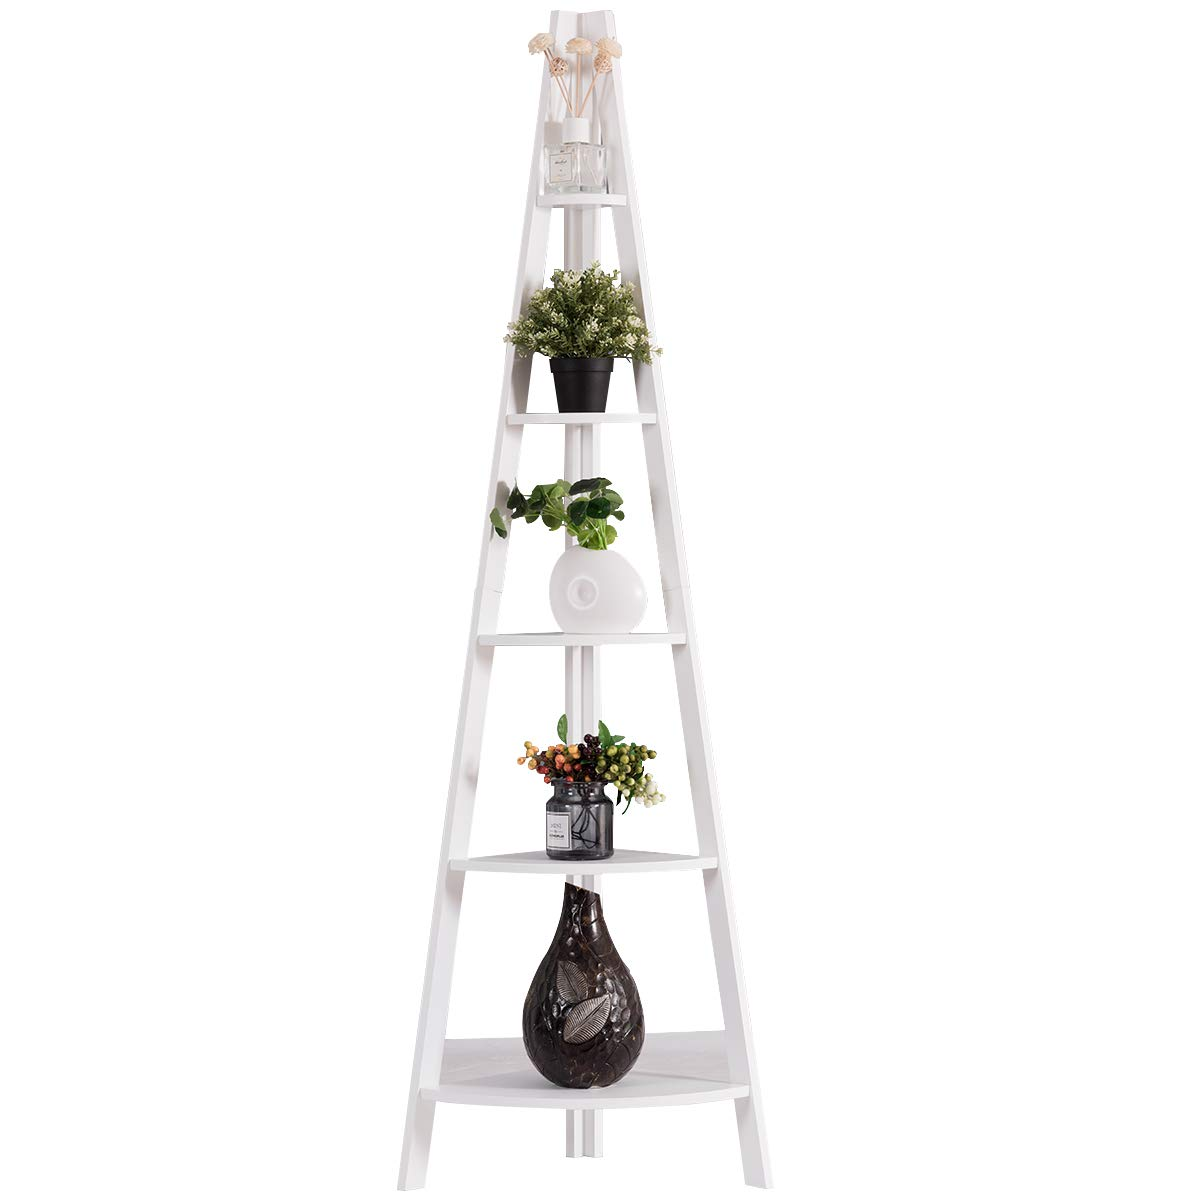 Tangkula 5-Tier Corner Ladder Shelf, Wooden Contemporary Rustic Style Bookshelf, A-Shaped Durable Frame Plant Stand, Storage Rack, Bookcase for Display, Storage in Home Office Living Room Bedroom by Tangkula